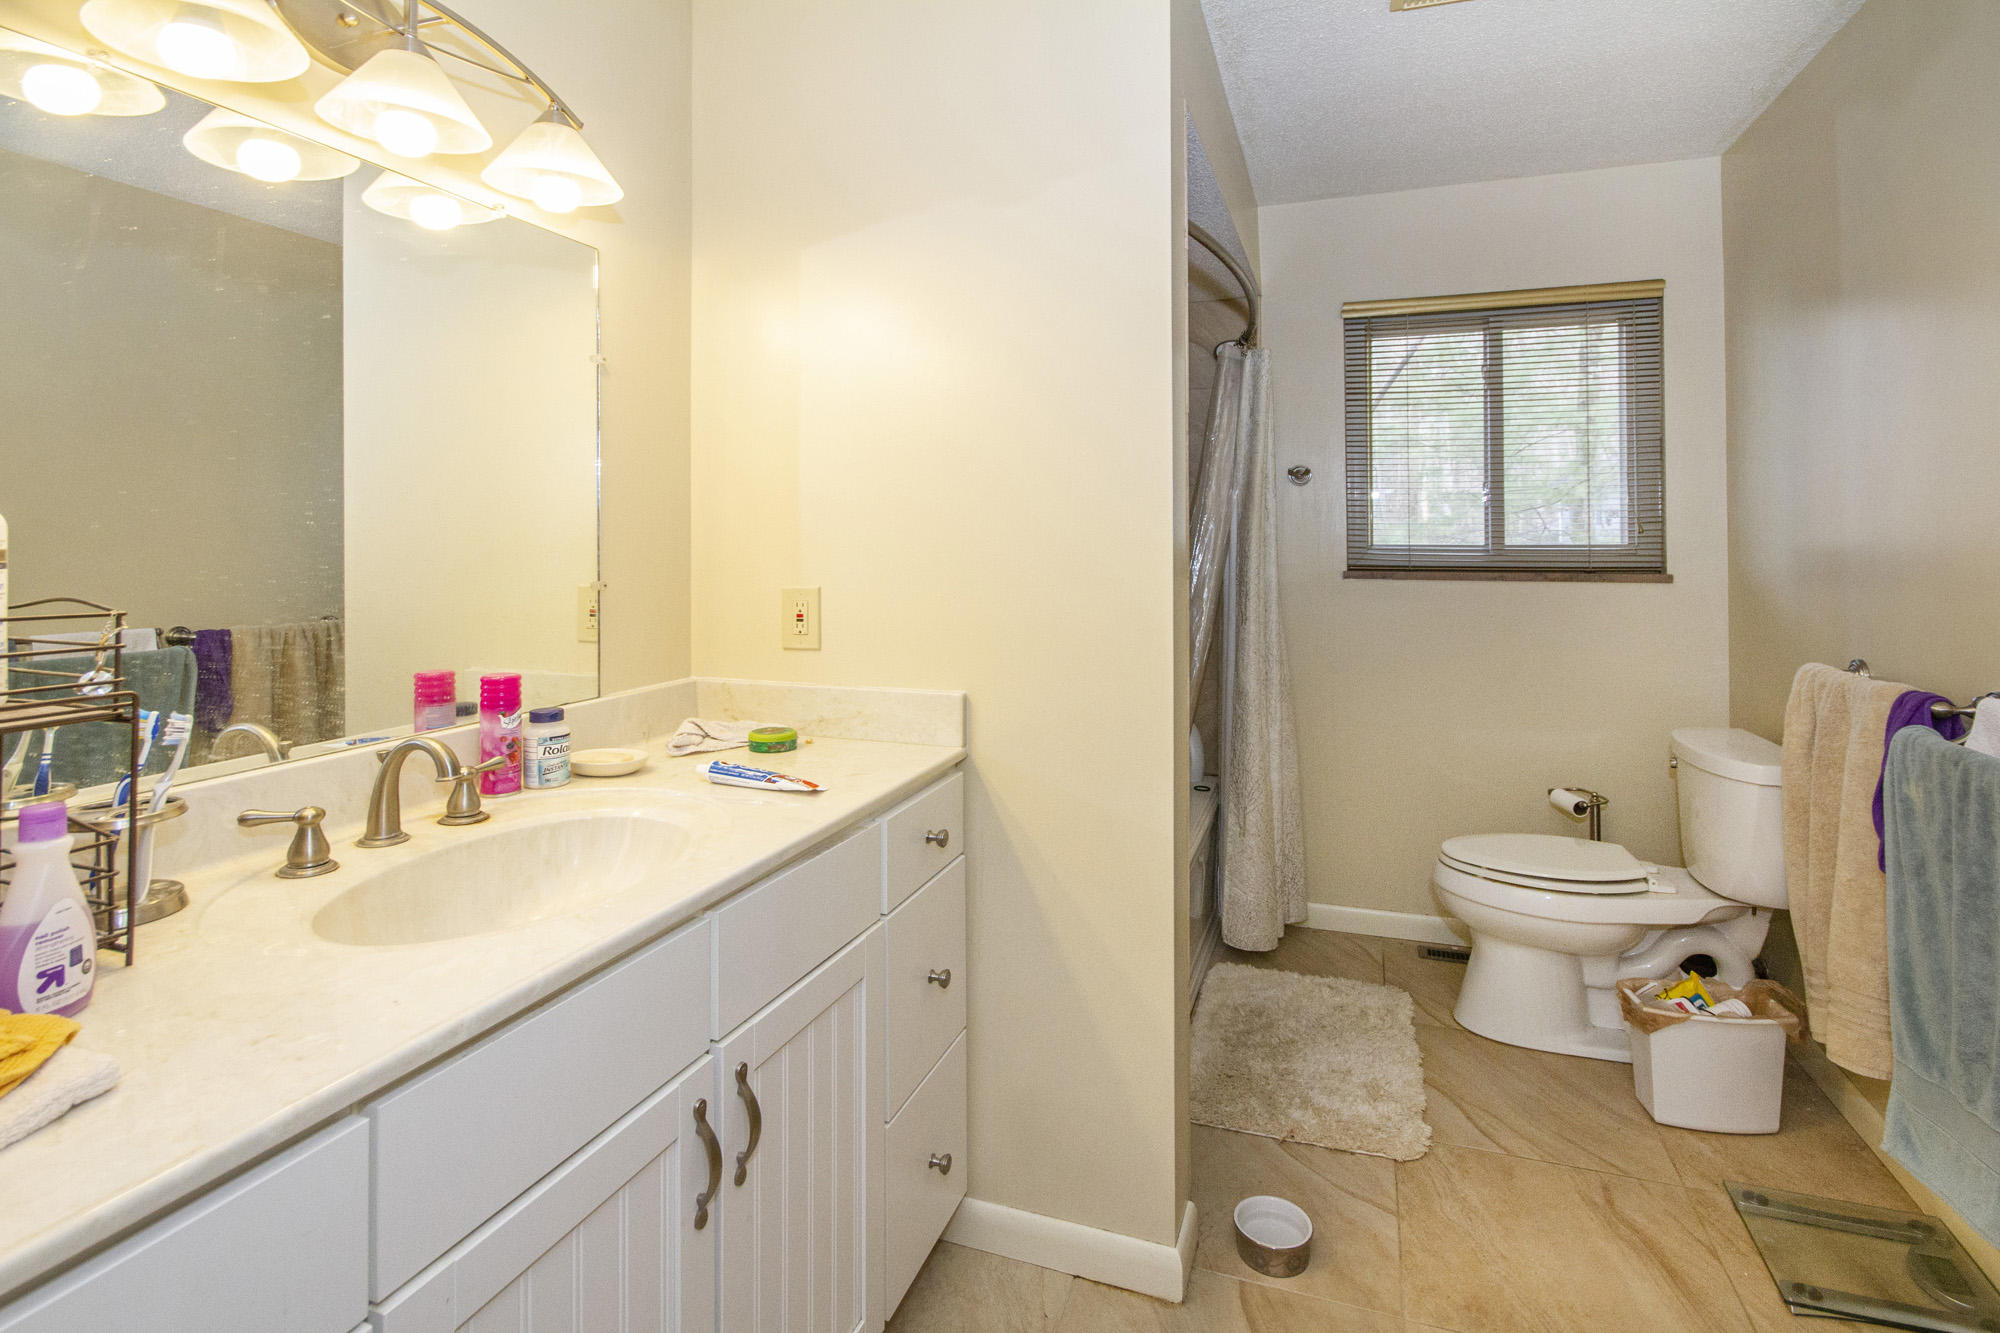 1124 Outer Drive, Oak Ridge, Tennessee 37830, 5 Bedrooms Bedrooms, ,3 BathroomsBathrooms,Single Family,For Sale,Outer,1111536